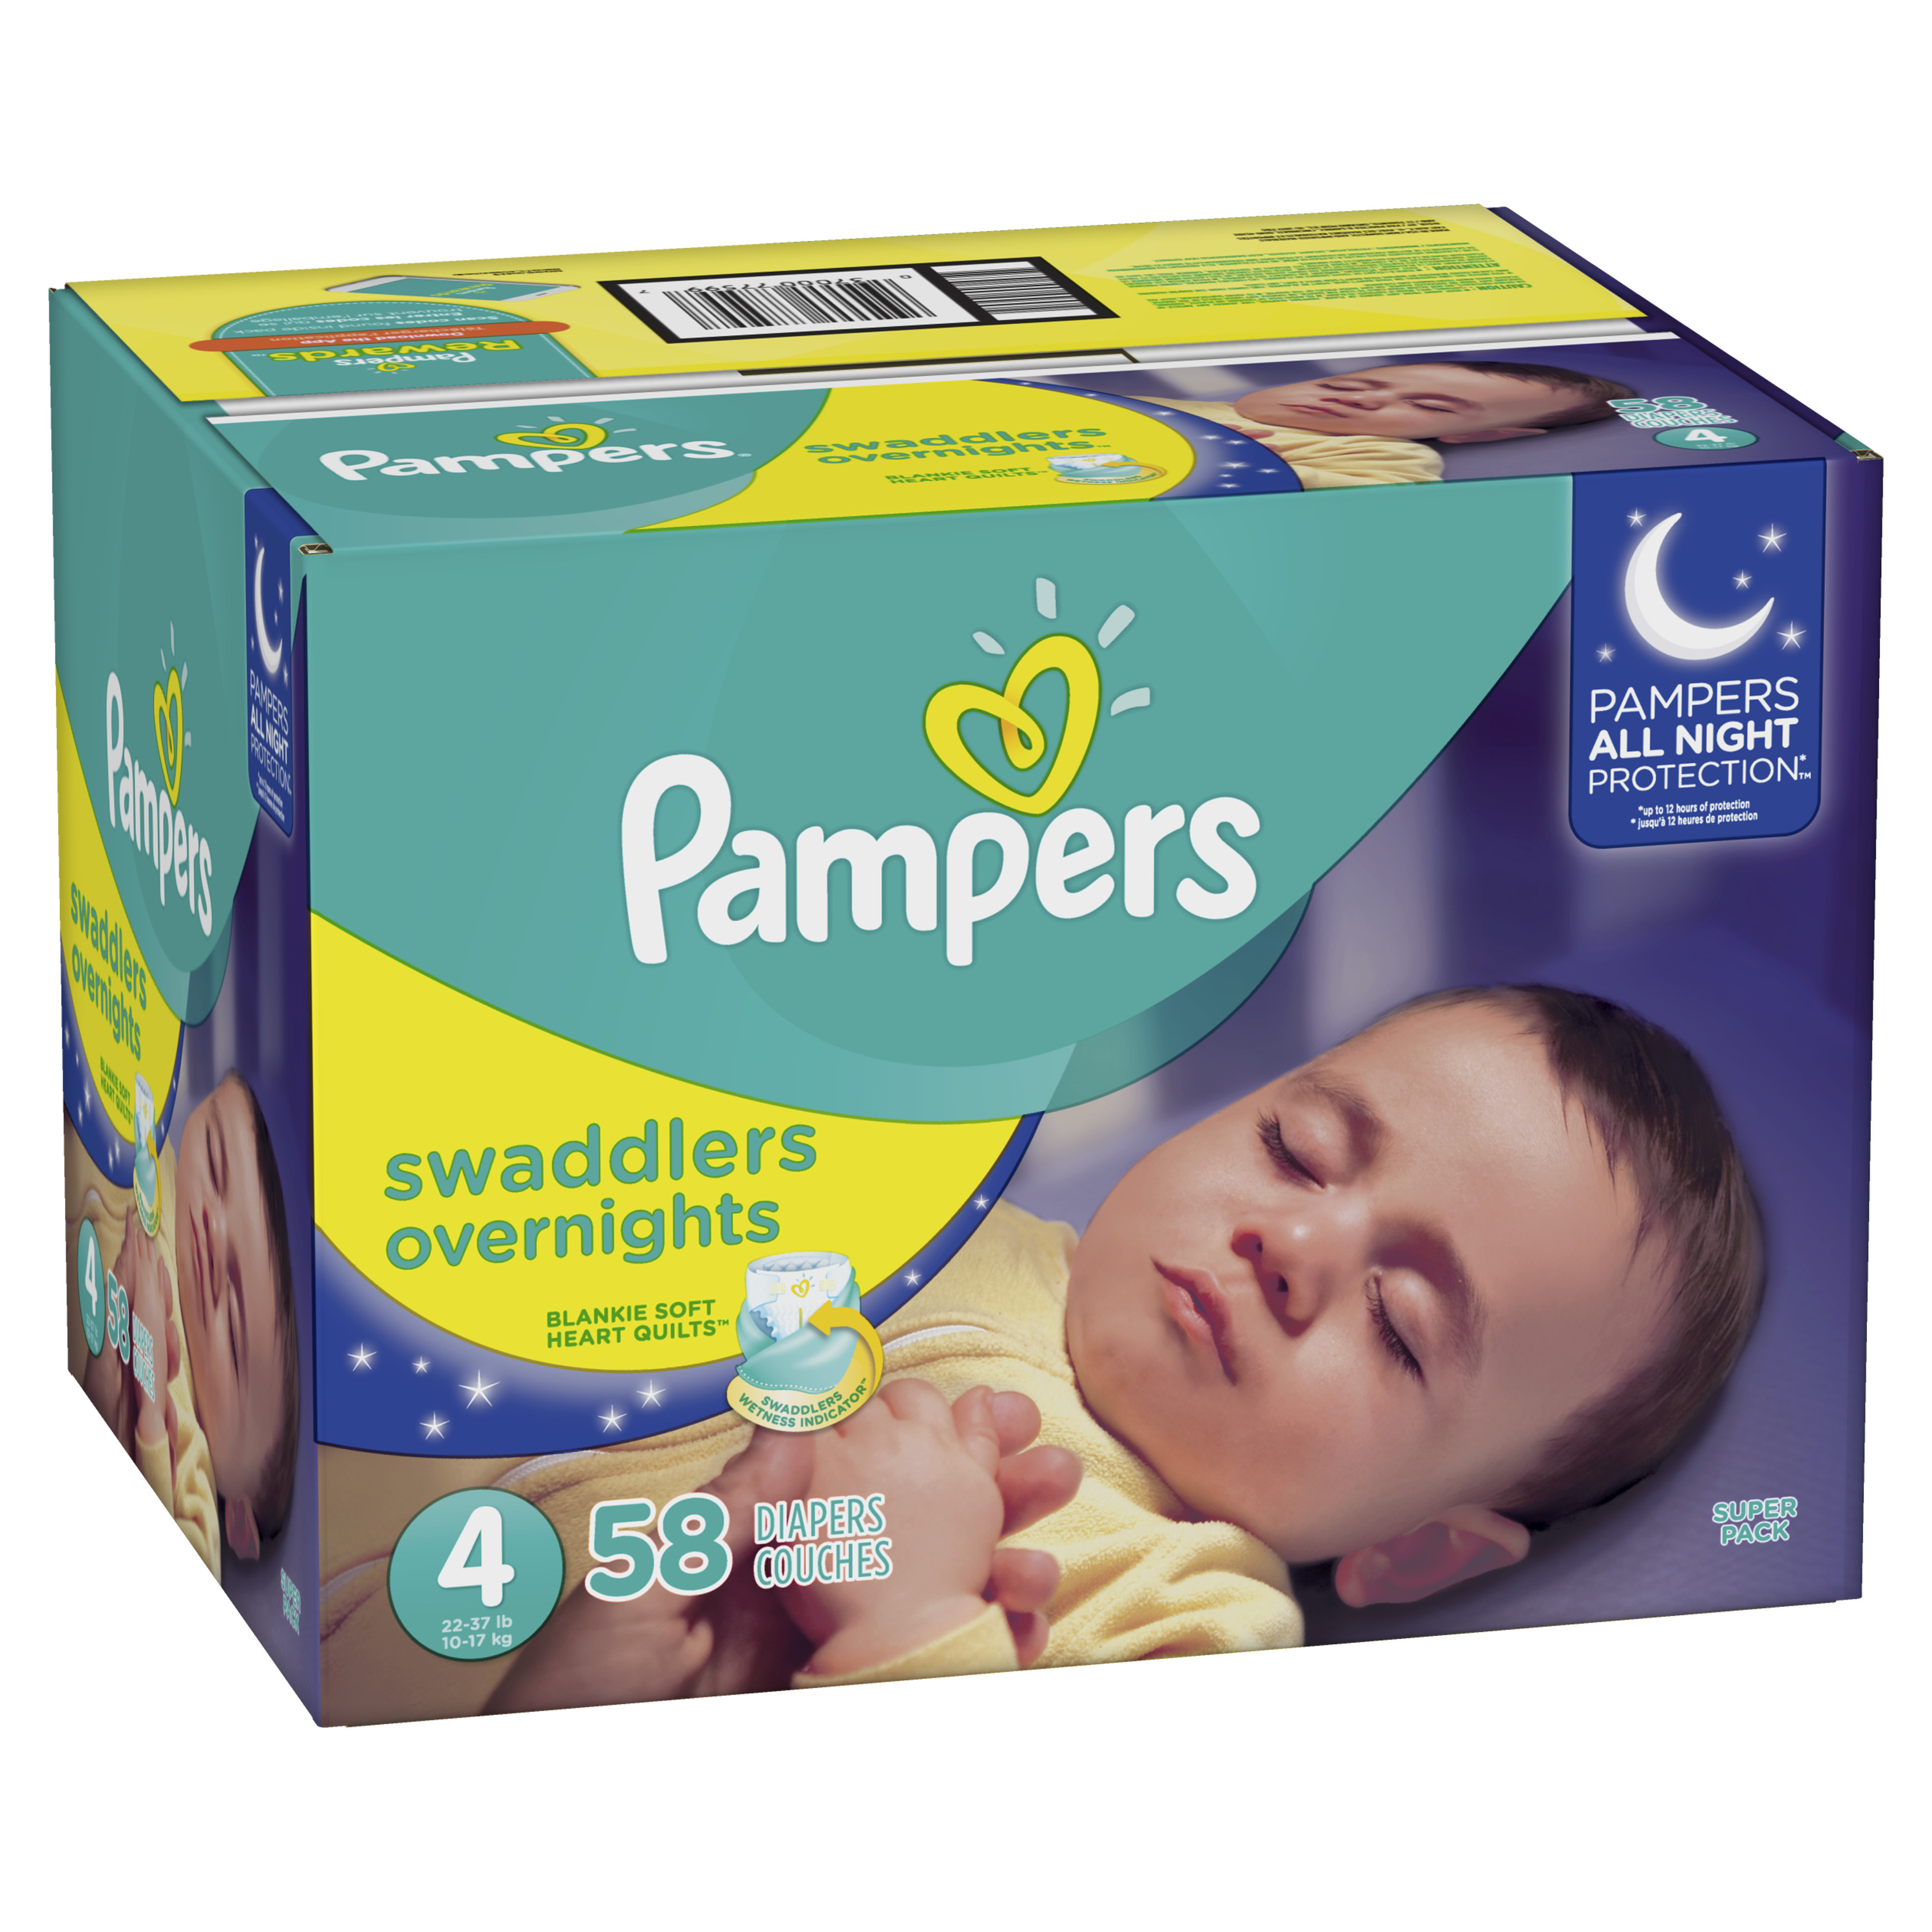 Pampers Swaddlers Overnights Diapers Size 4 58 Count